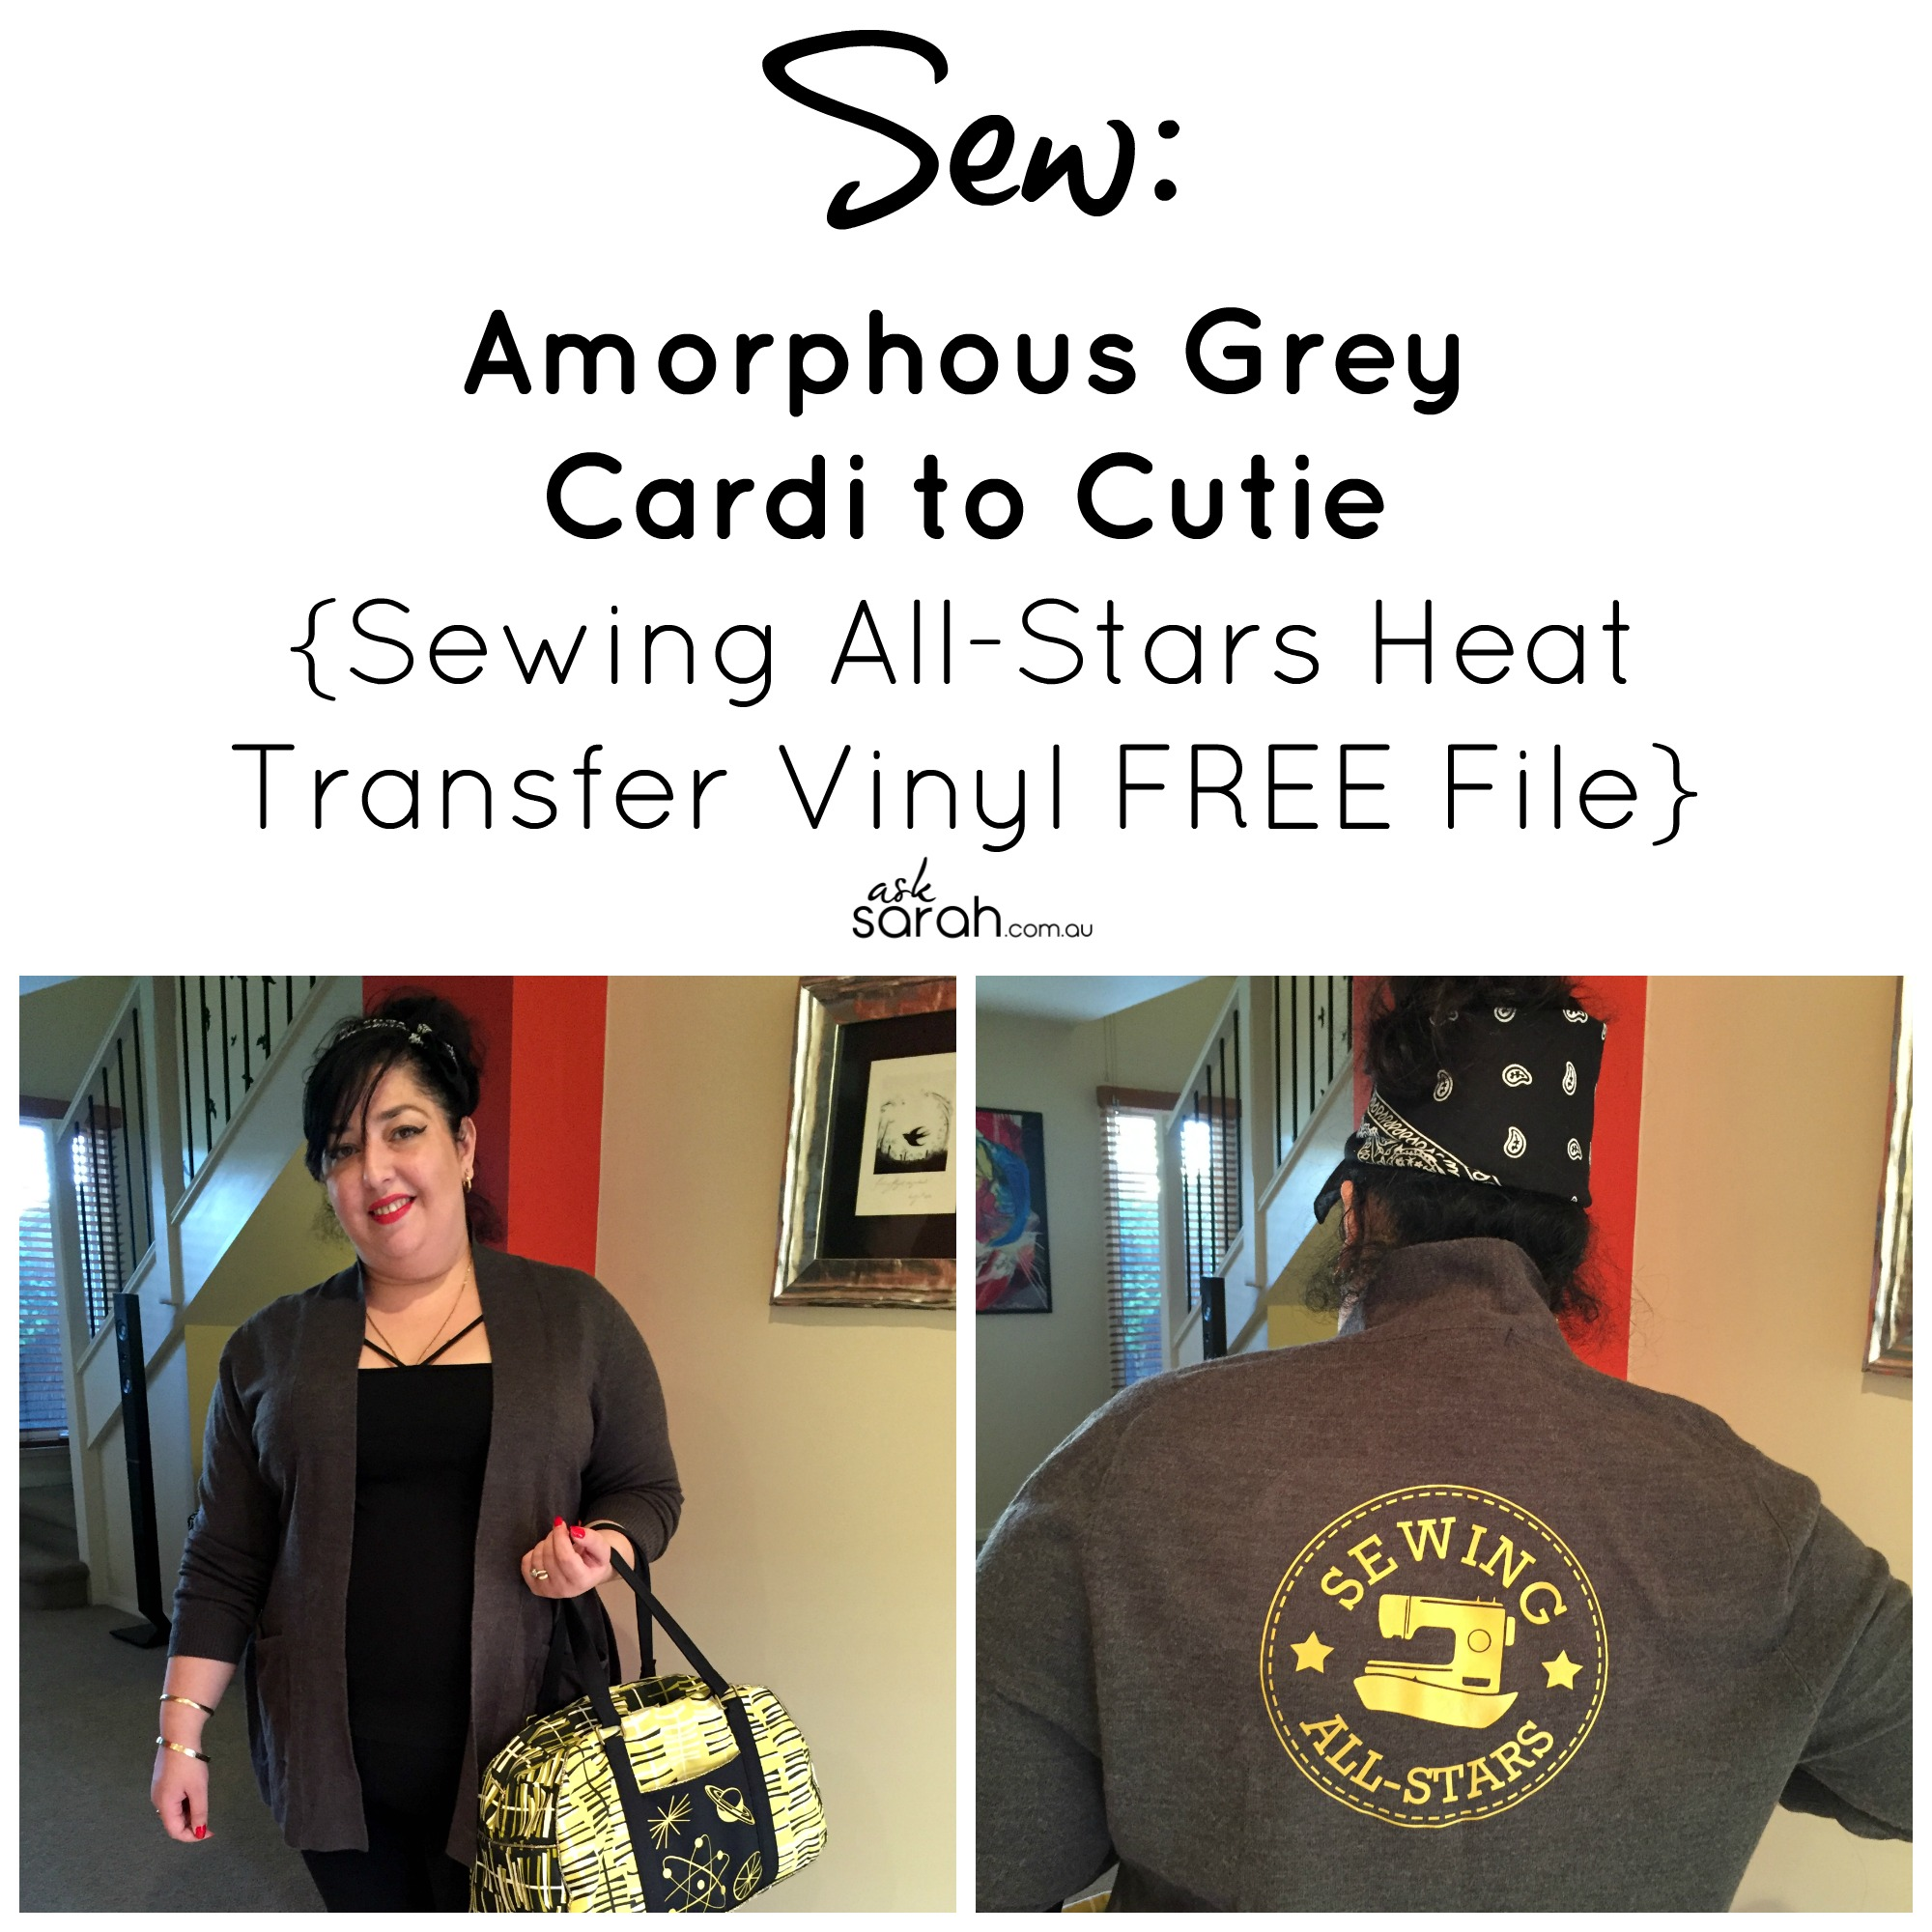 Sew: Amorphous Grey Cardi to Cutie {Sewing All-Stars Heat Transfer Vinyl FREE File}